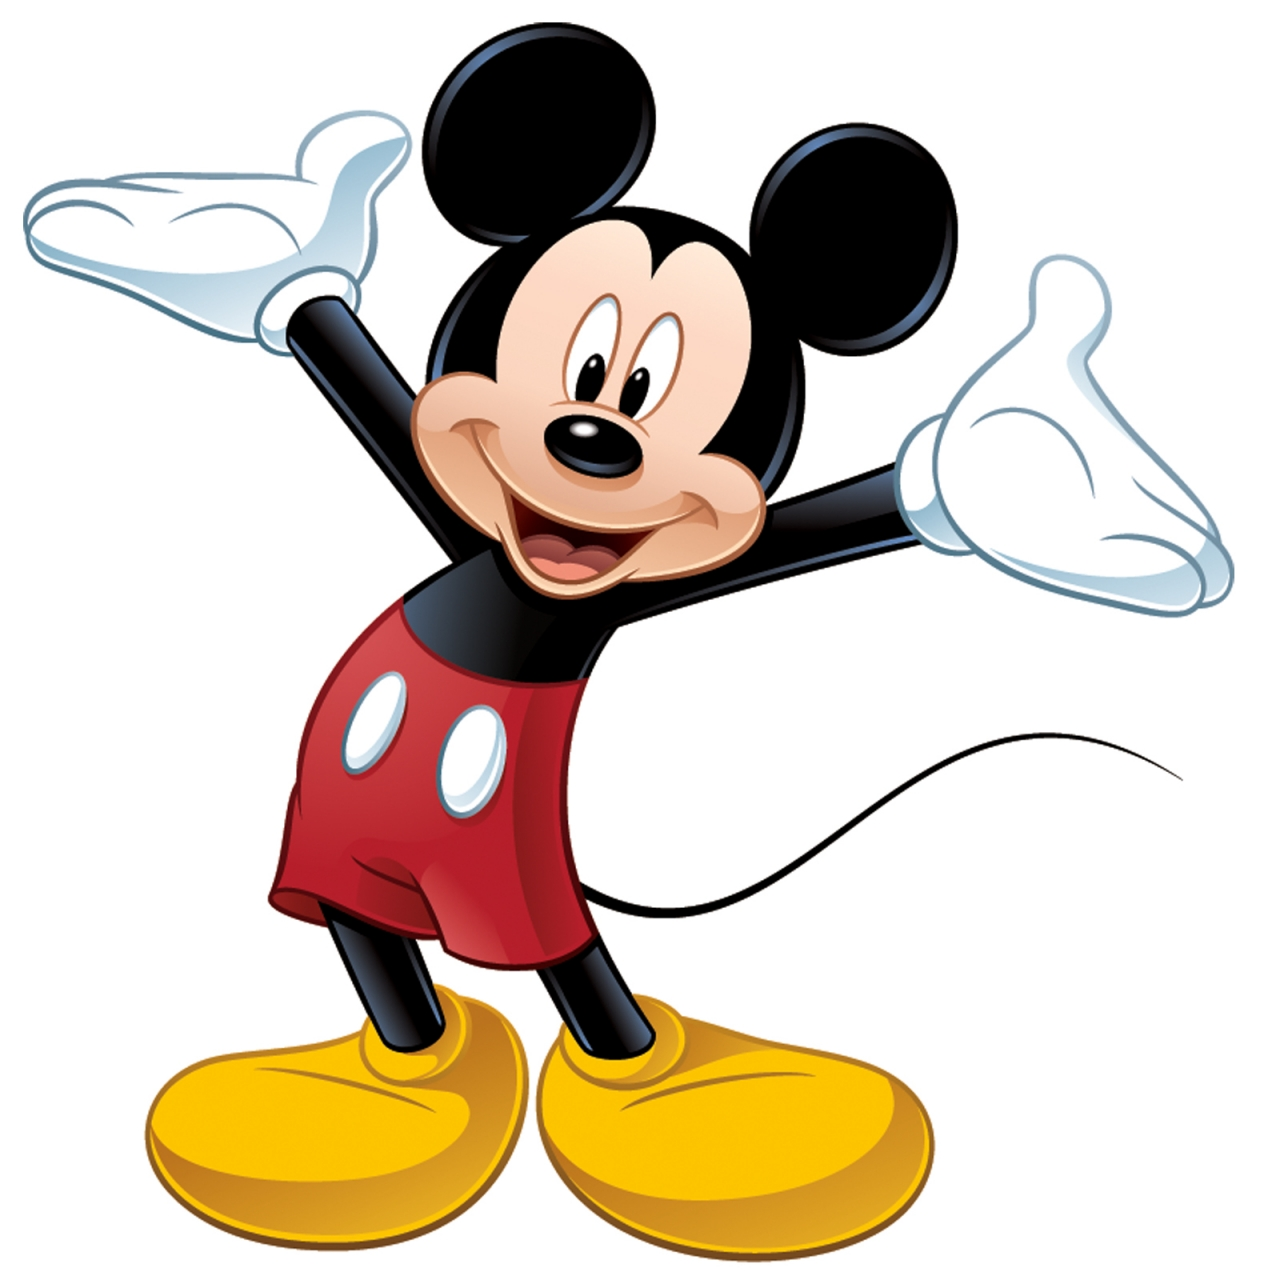 Mickey mouse images hd clipart clip art royalty free stock Free Mickey Mouse Cartoons, Download Free Clip Art, Free Clip Art on ... clip art royalty free stock